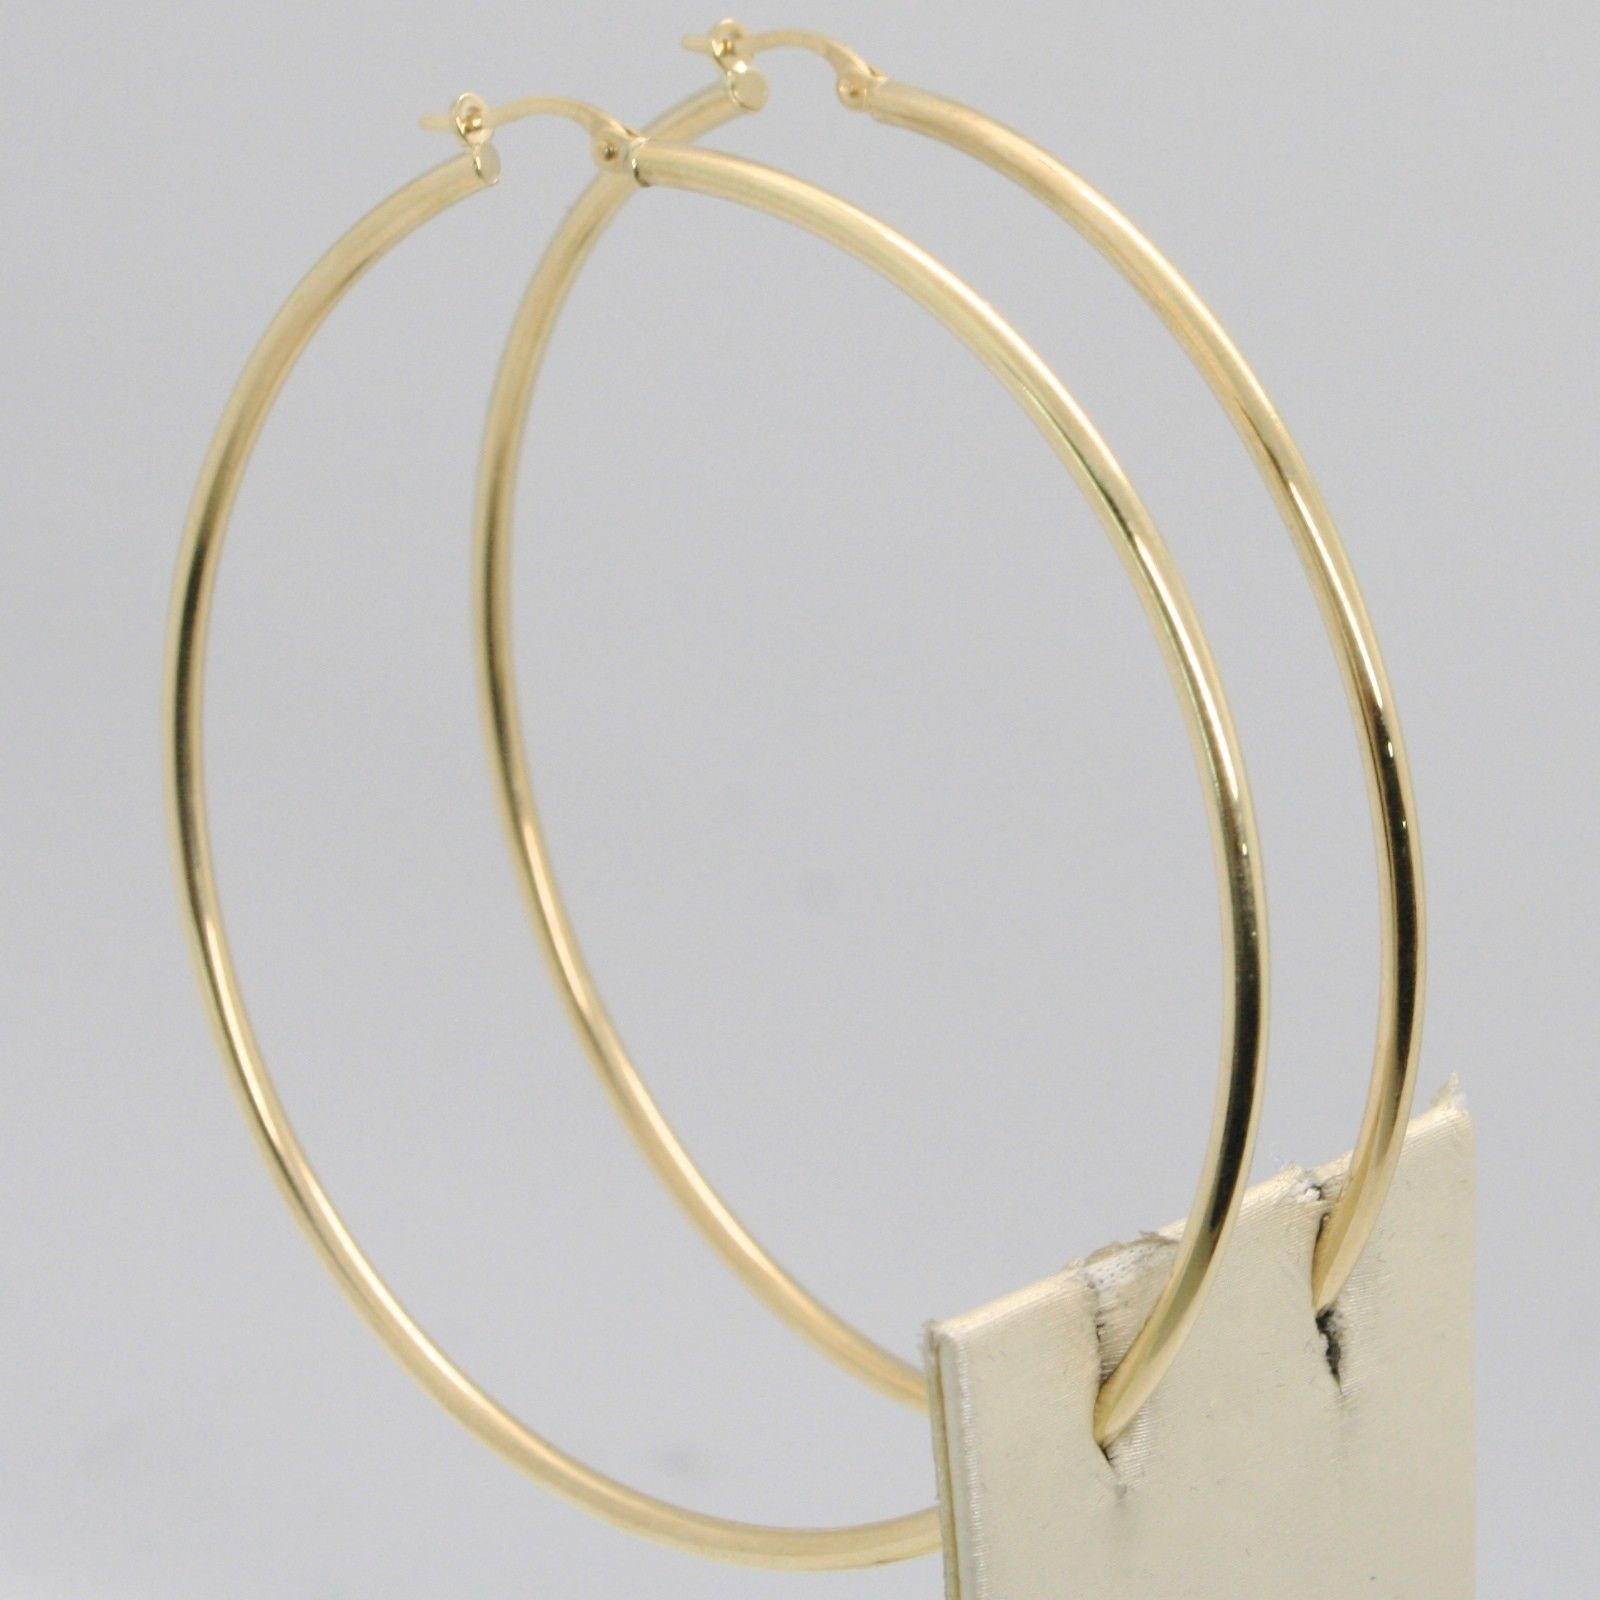 18K YELLOW GOLD ROUND CIRCLE EARRINGS DIAMETER 60 MM, WIDTH 2 MM, MADE IN ITALY